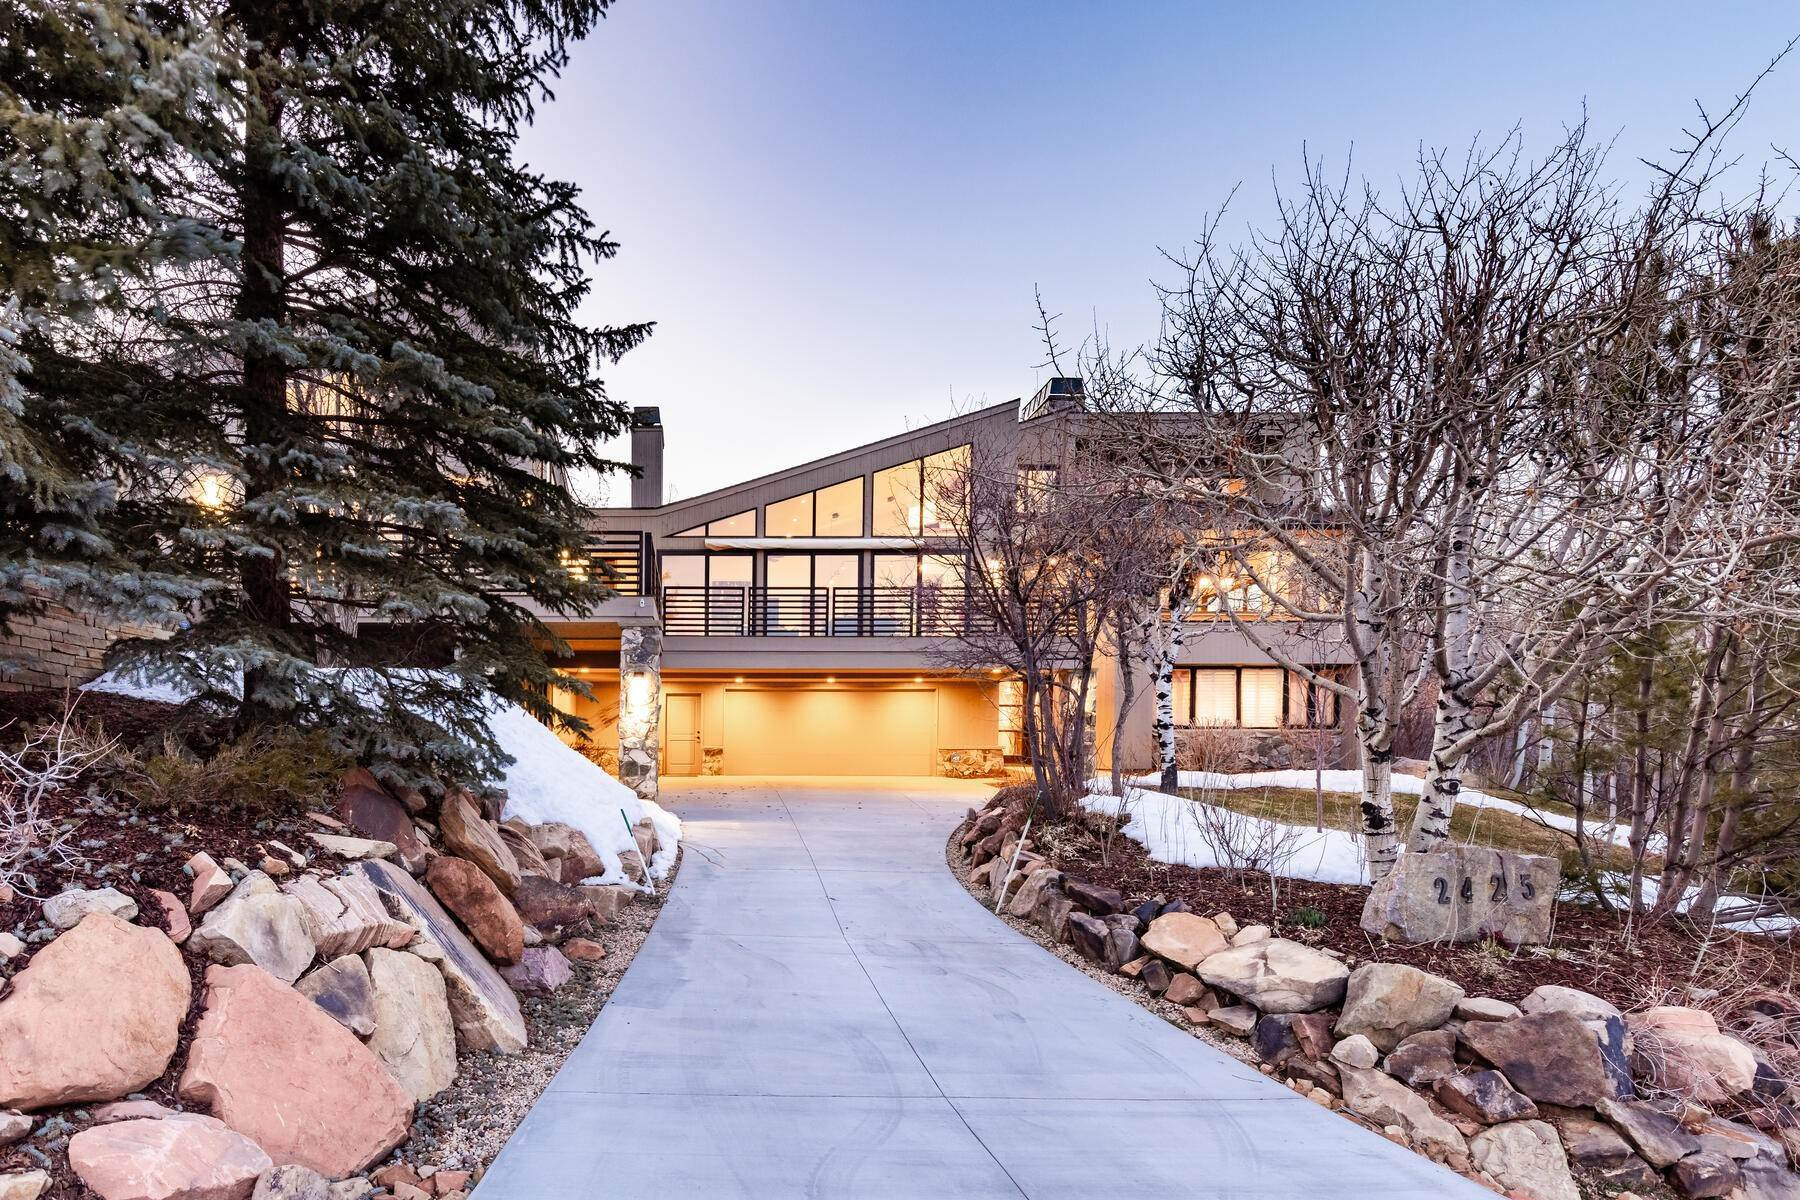 Single Family Homes for Sale at Phenomenal Iron Canyon Home With Stunningly Unobstructed Views 2425 Iron Canyon Dr Park City, Utah 84060 United States